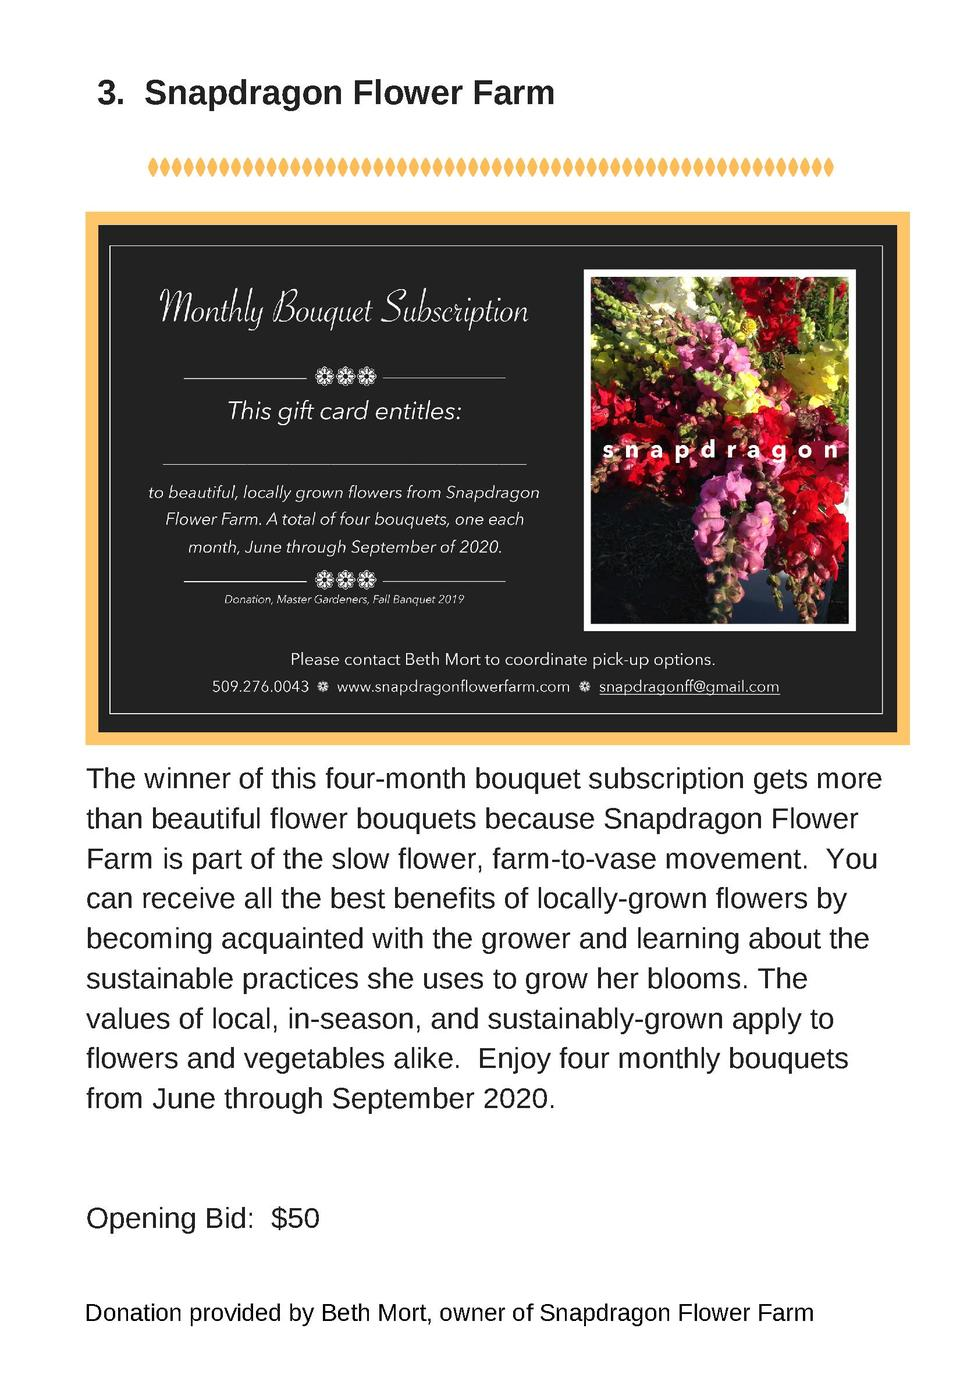 3. Snapdragon Flower Farm  The winner of this four-month bouquet subscription gets more than beautiful flower bouquets bec...